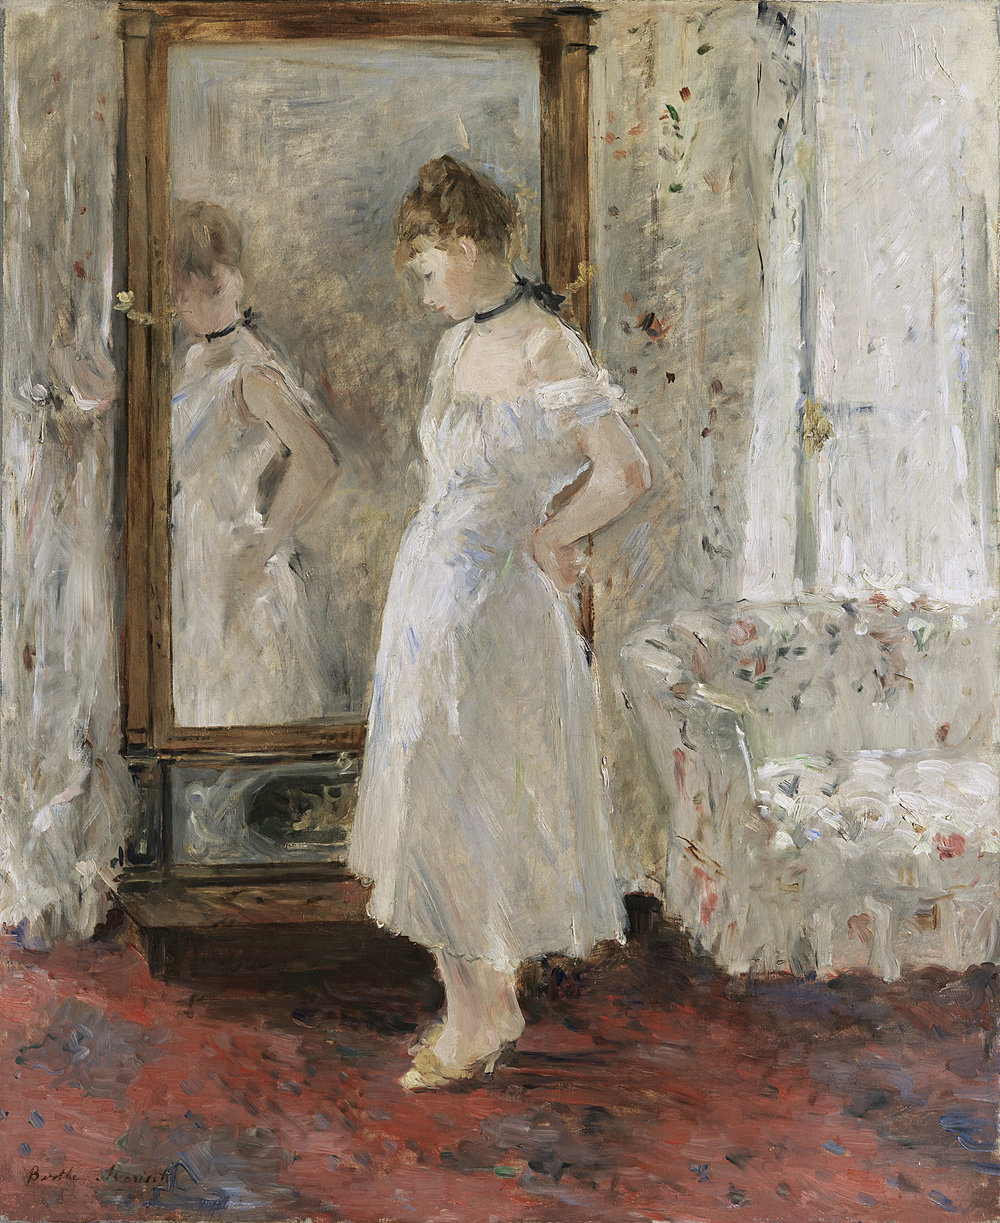 """The Psyche"" by Berthe Morisot"